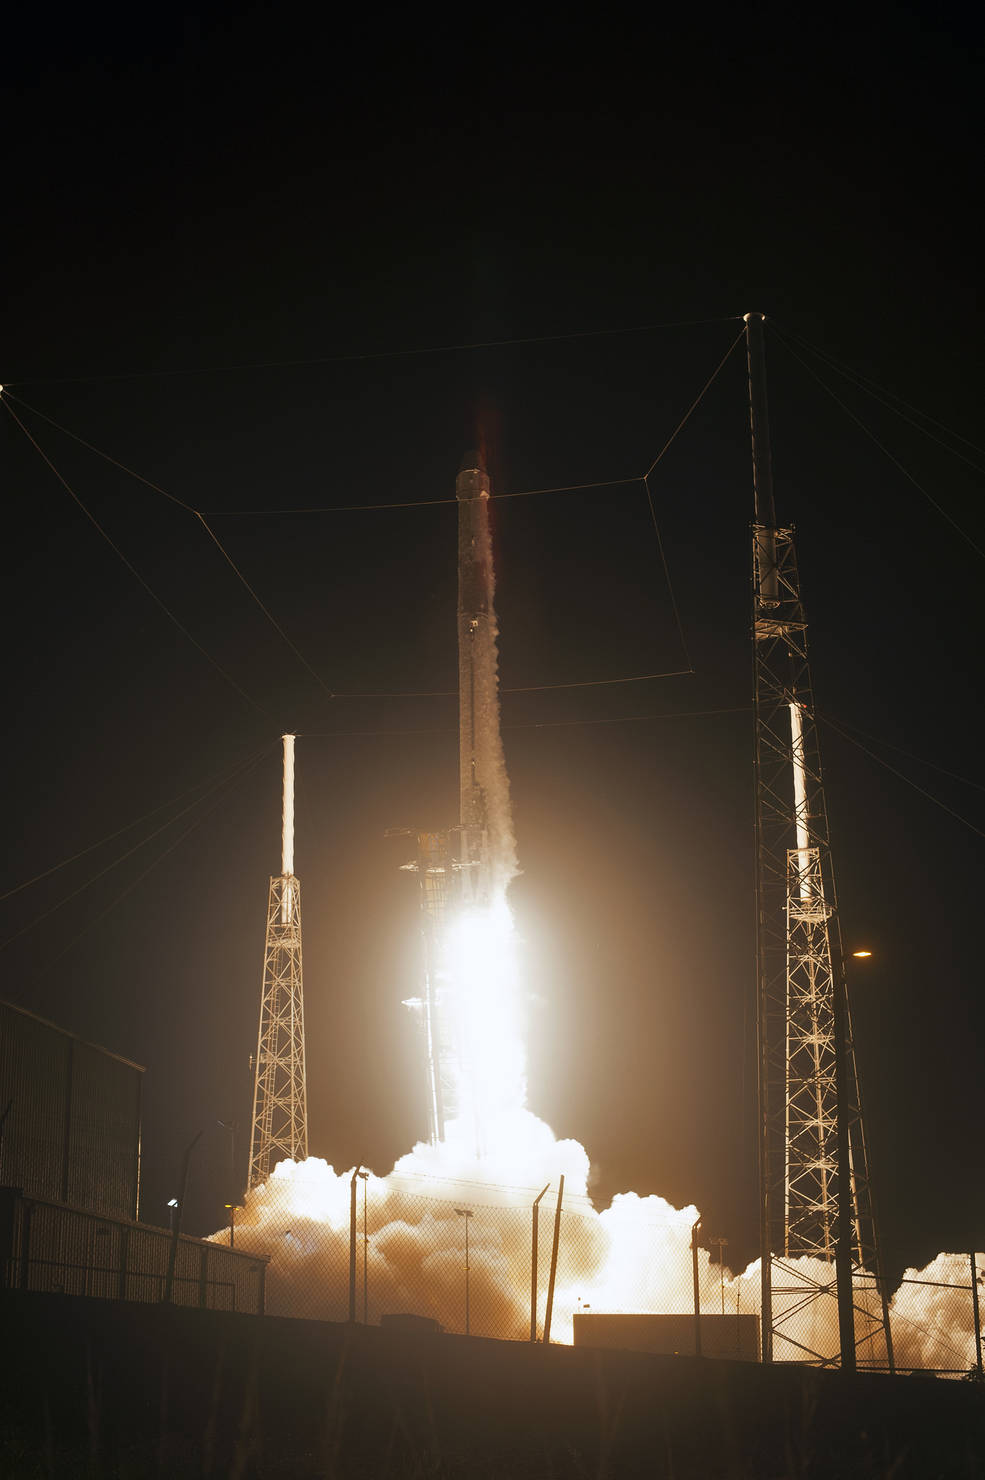 A two-stage SpaceX Falcon 9 launch vehicle lifts off from Space Launch Complex 40 at Cape Canaveral Air Force Station in Florida